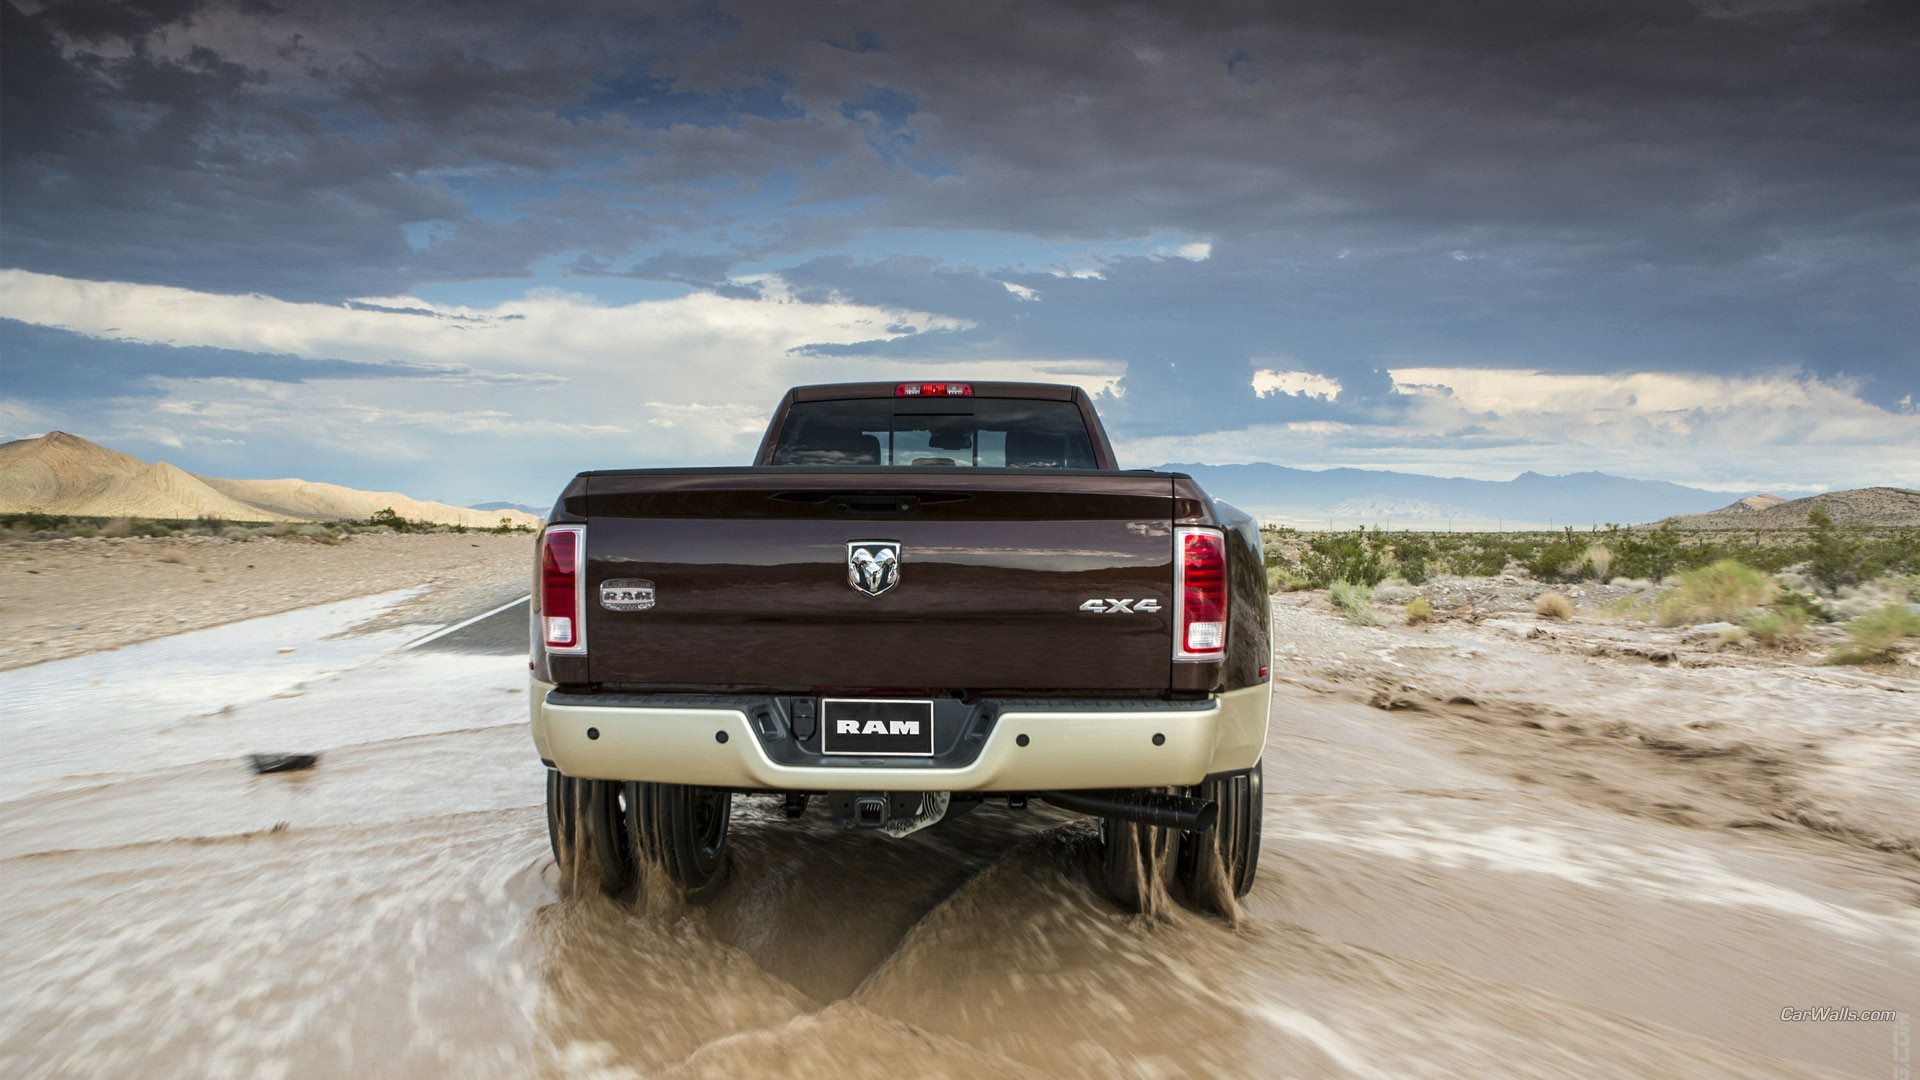 Dodge Ram 3500 Full HD Wallpaper And Background Image